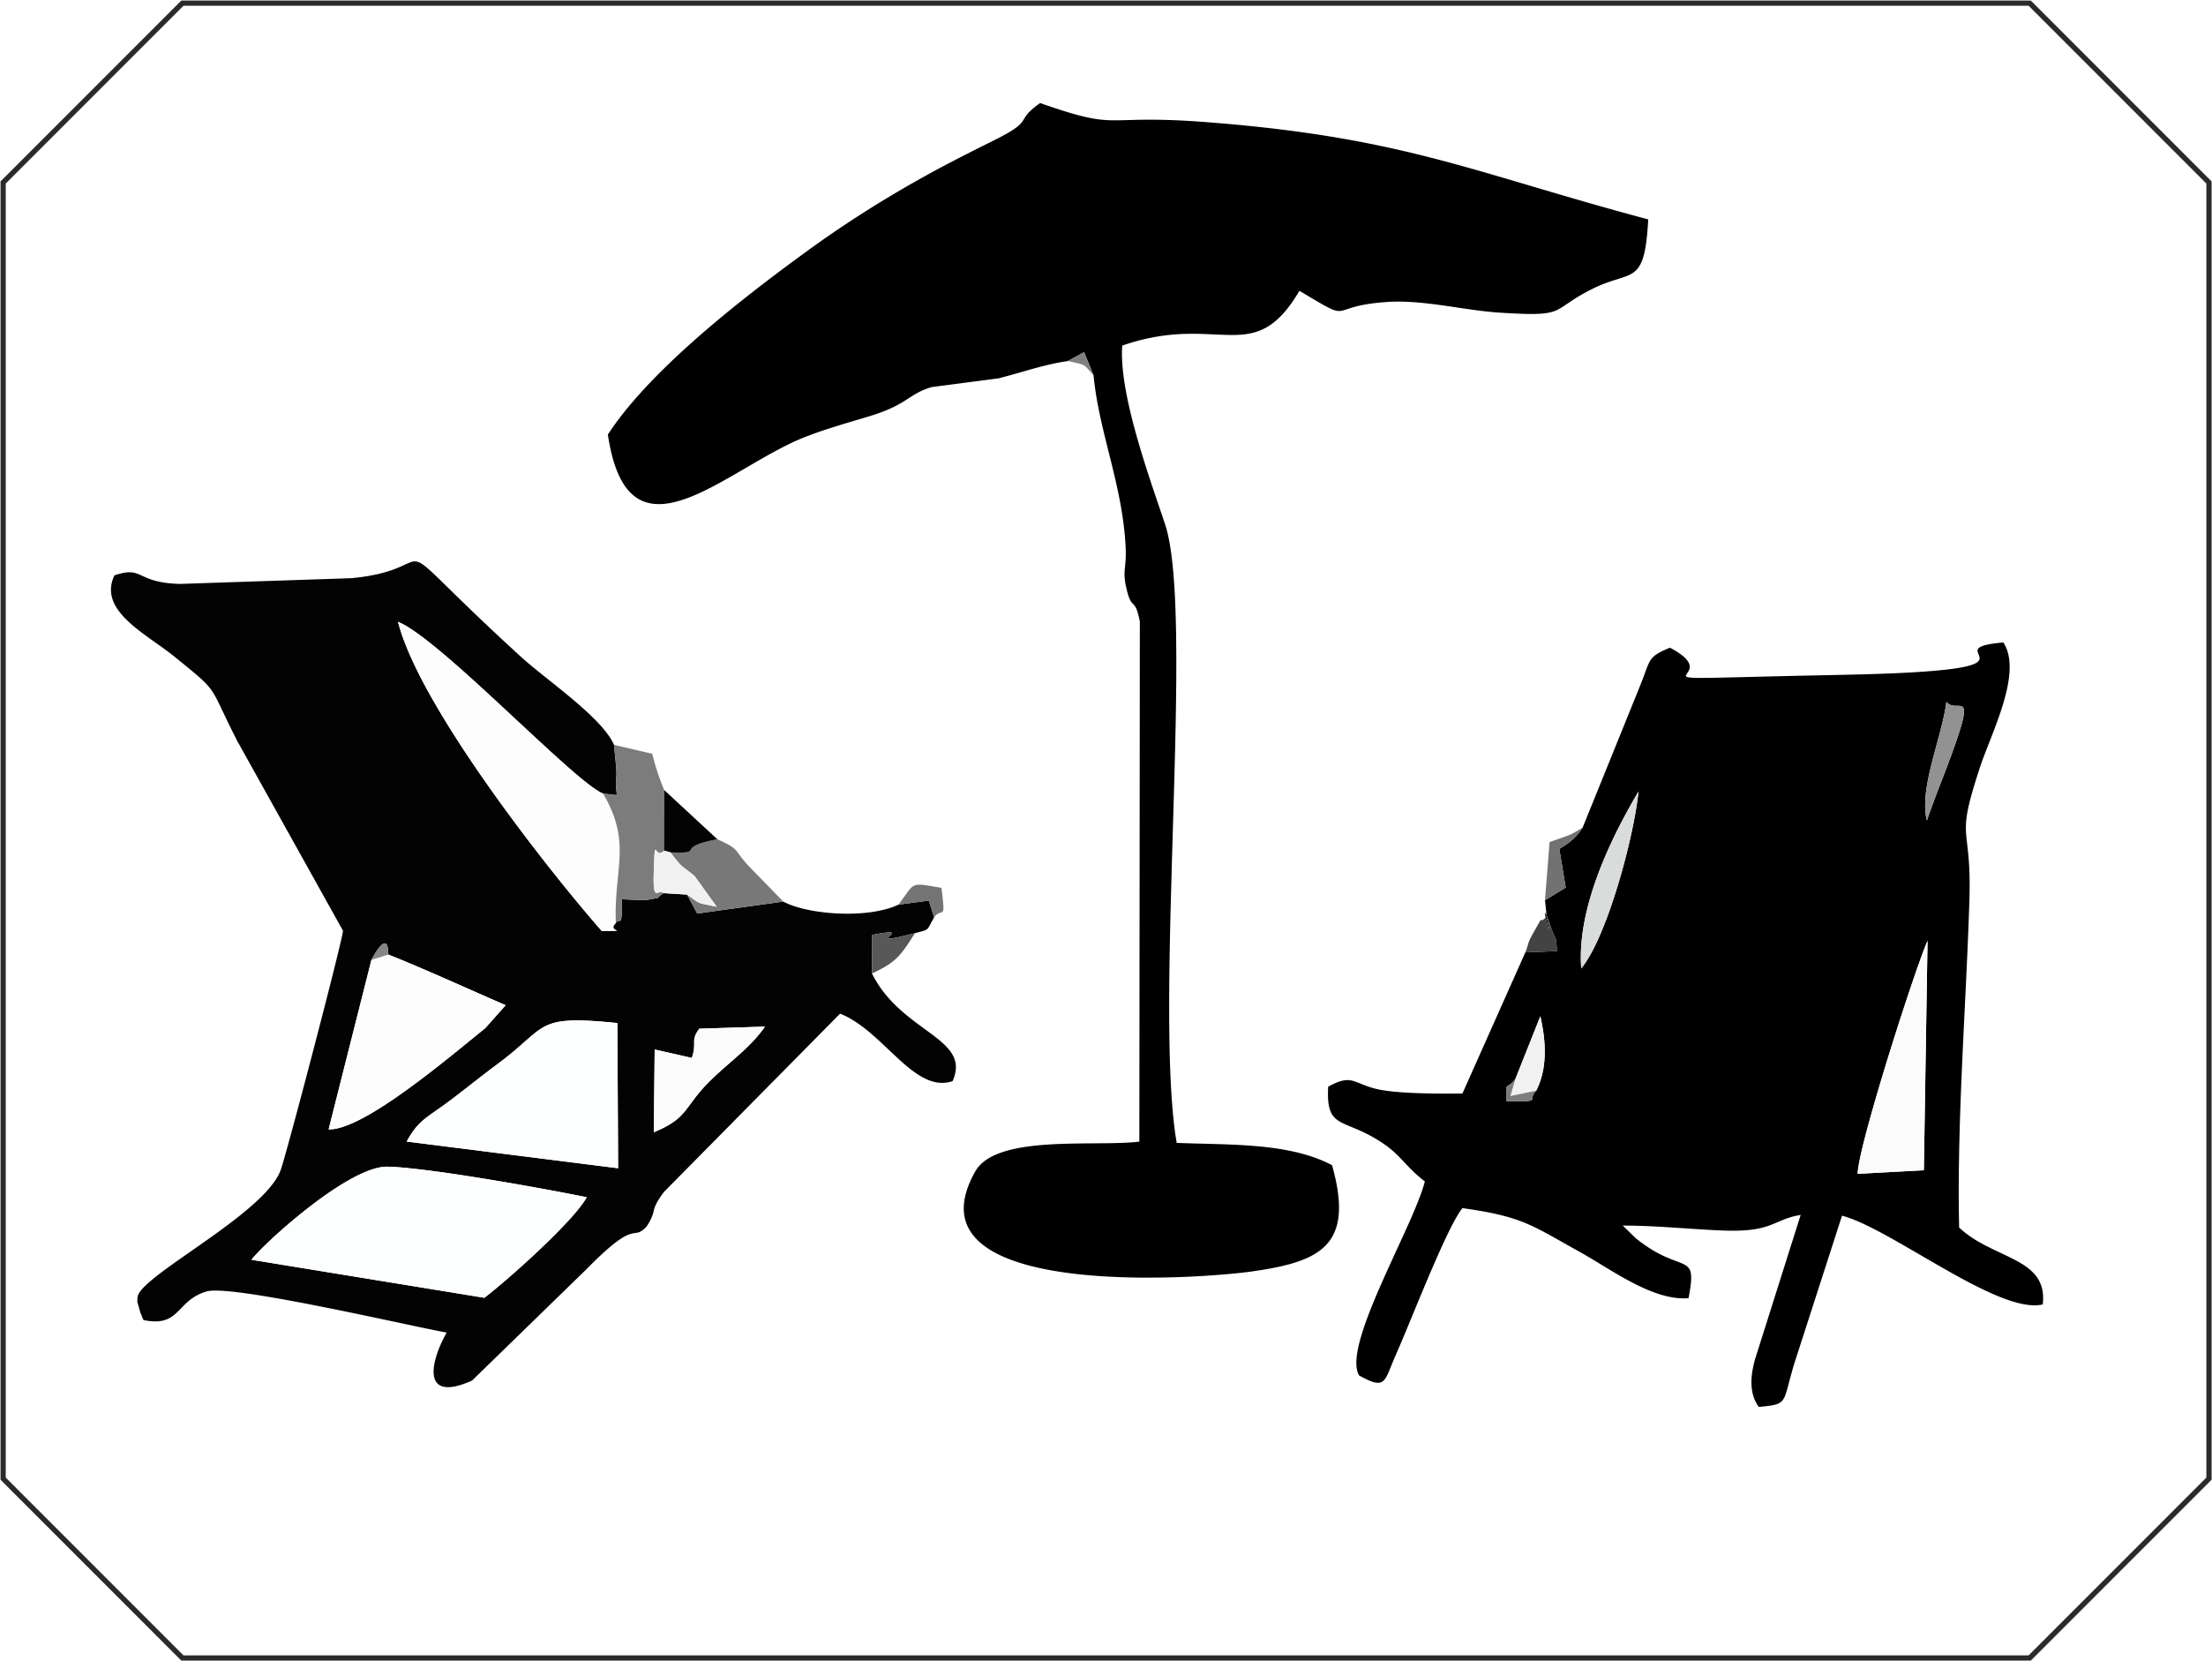 Deckchair Garden furniture Umbrella.